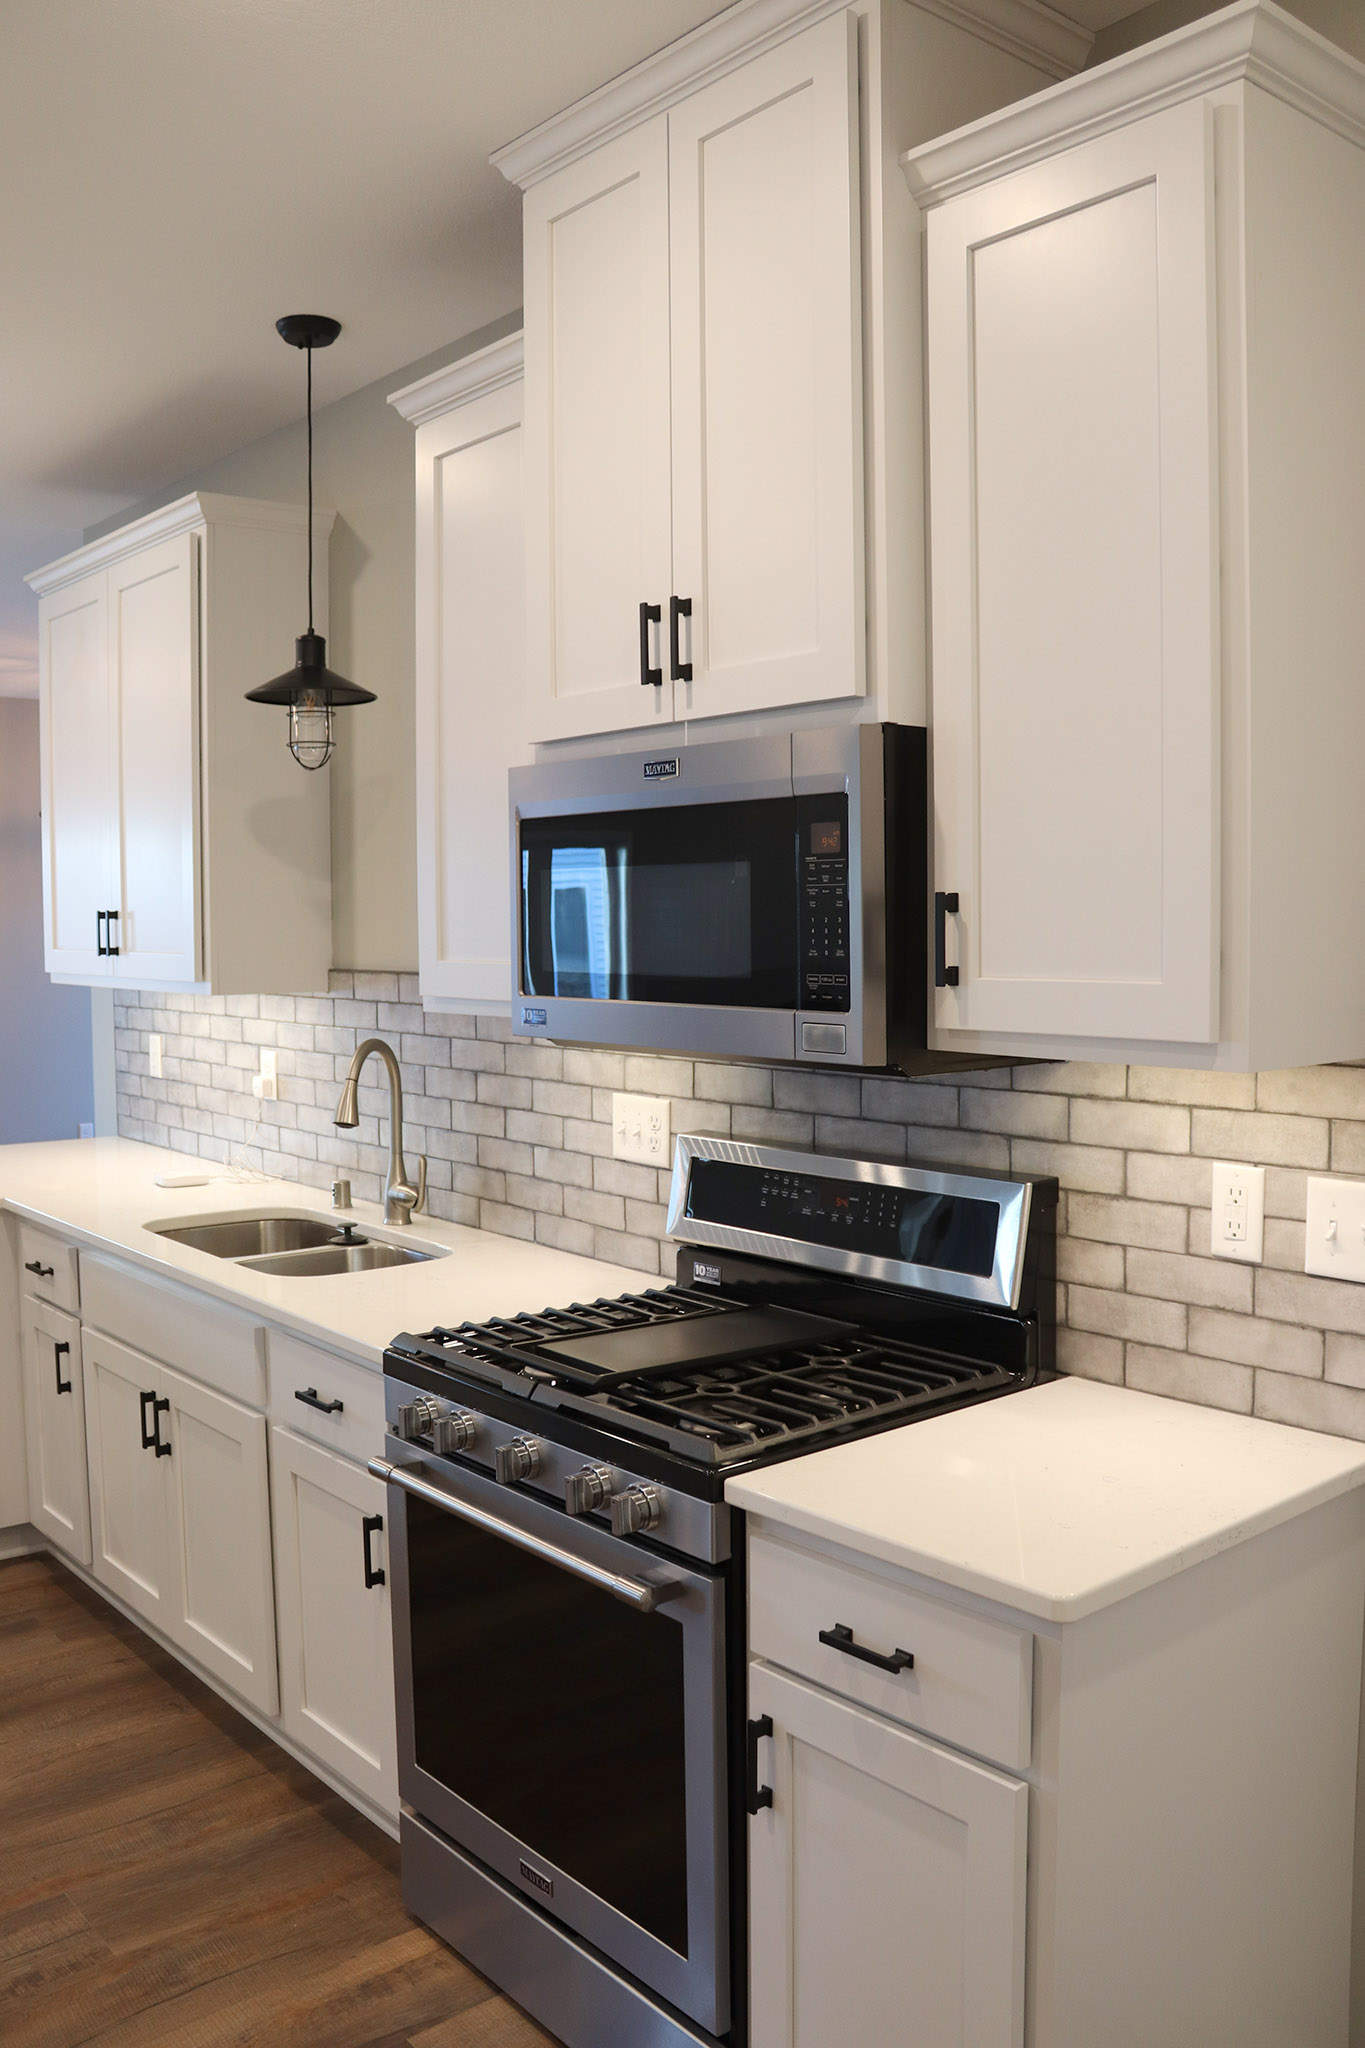 White kitchen cabinets with white granite countertops, undermount sink, ceramic tile backsplash and stainless steel appliances